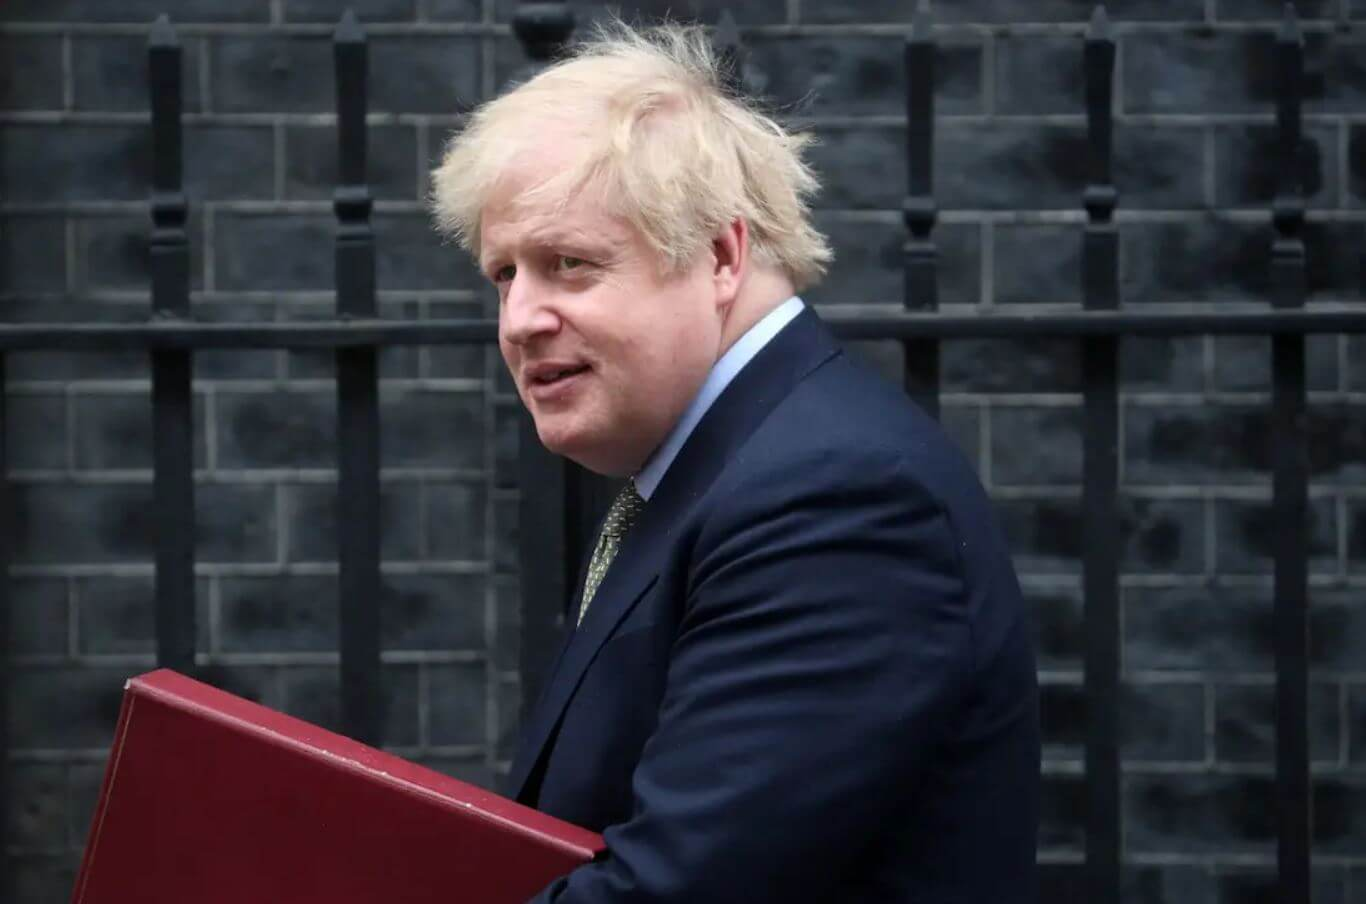 British Prime Minister Boris Johnson, hospitalized for four days with coronavirus, has left the intensive care unit and will begin his recovery in a general service at St Thomas Hospital in London, his government announced Thursday. UK Prime Minister was hospitalized for testing positive for coronavirus.